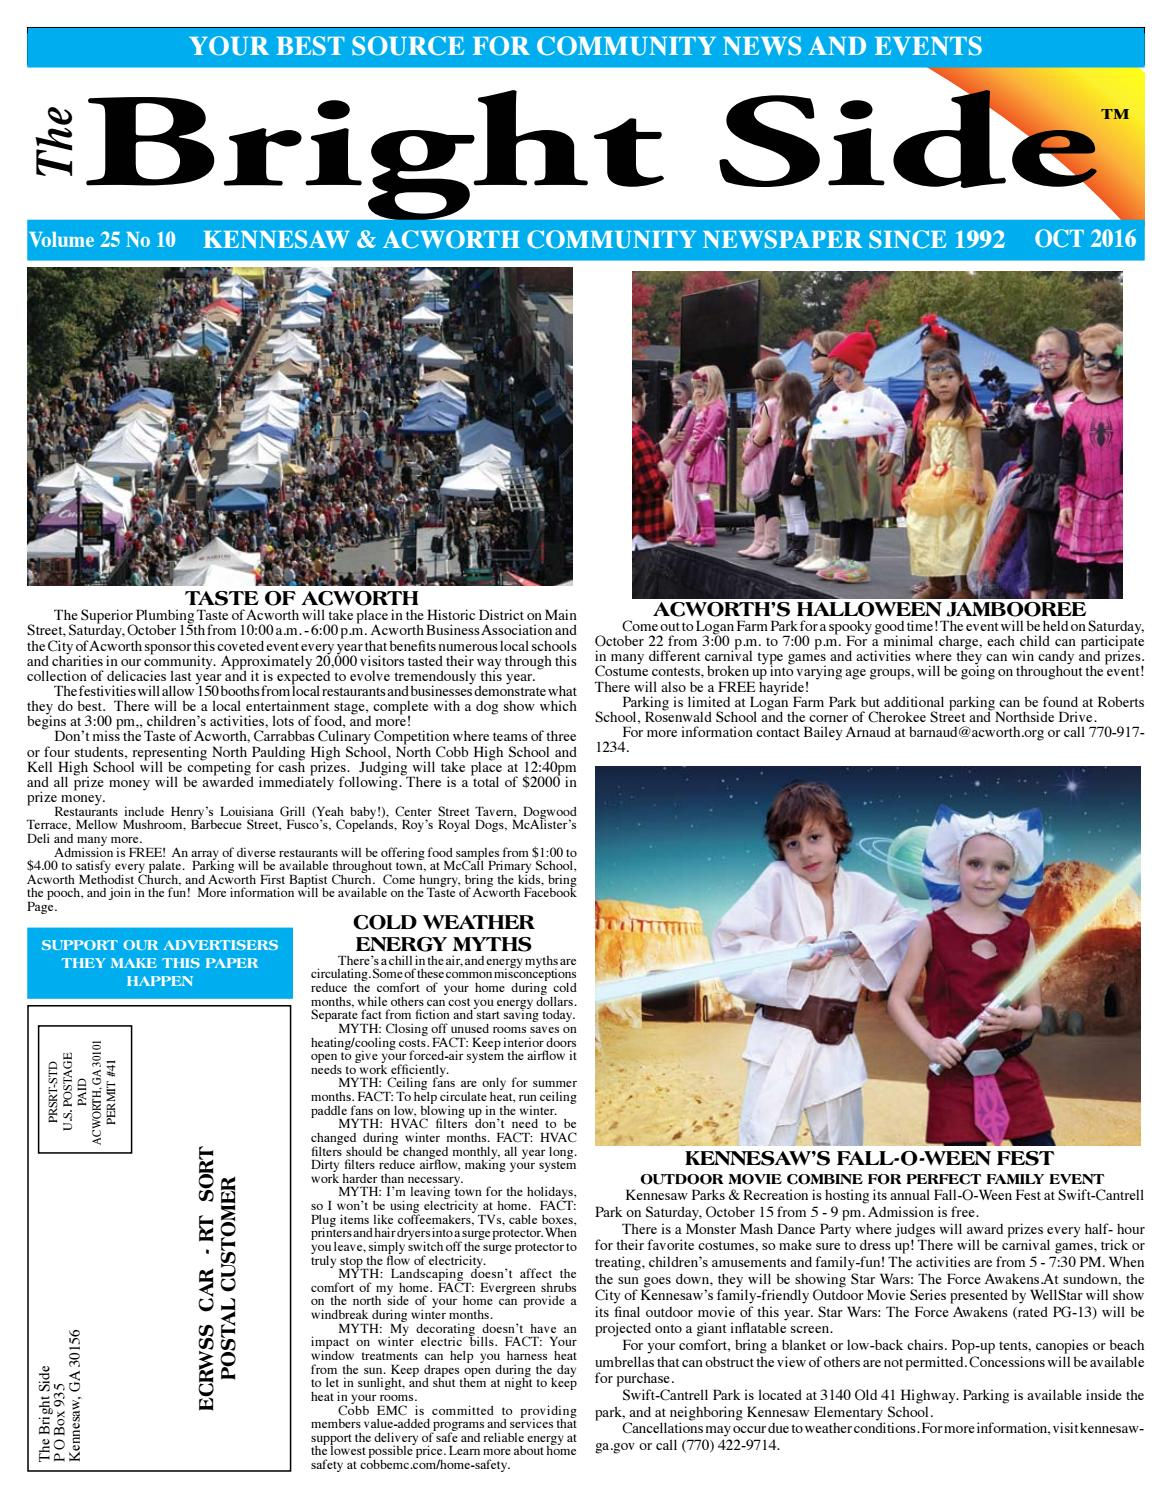 october 2016 kennesawacworth newspaper for cobb county by carol grigsby thompson publisher of the bright side community newspapers issuu - Halloween Express Kennesaw